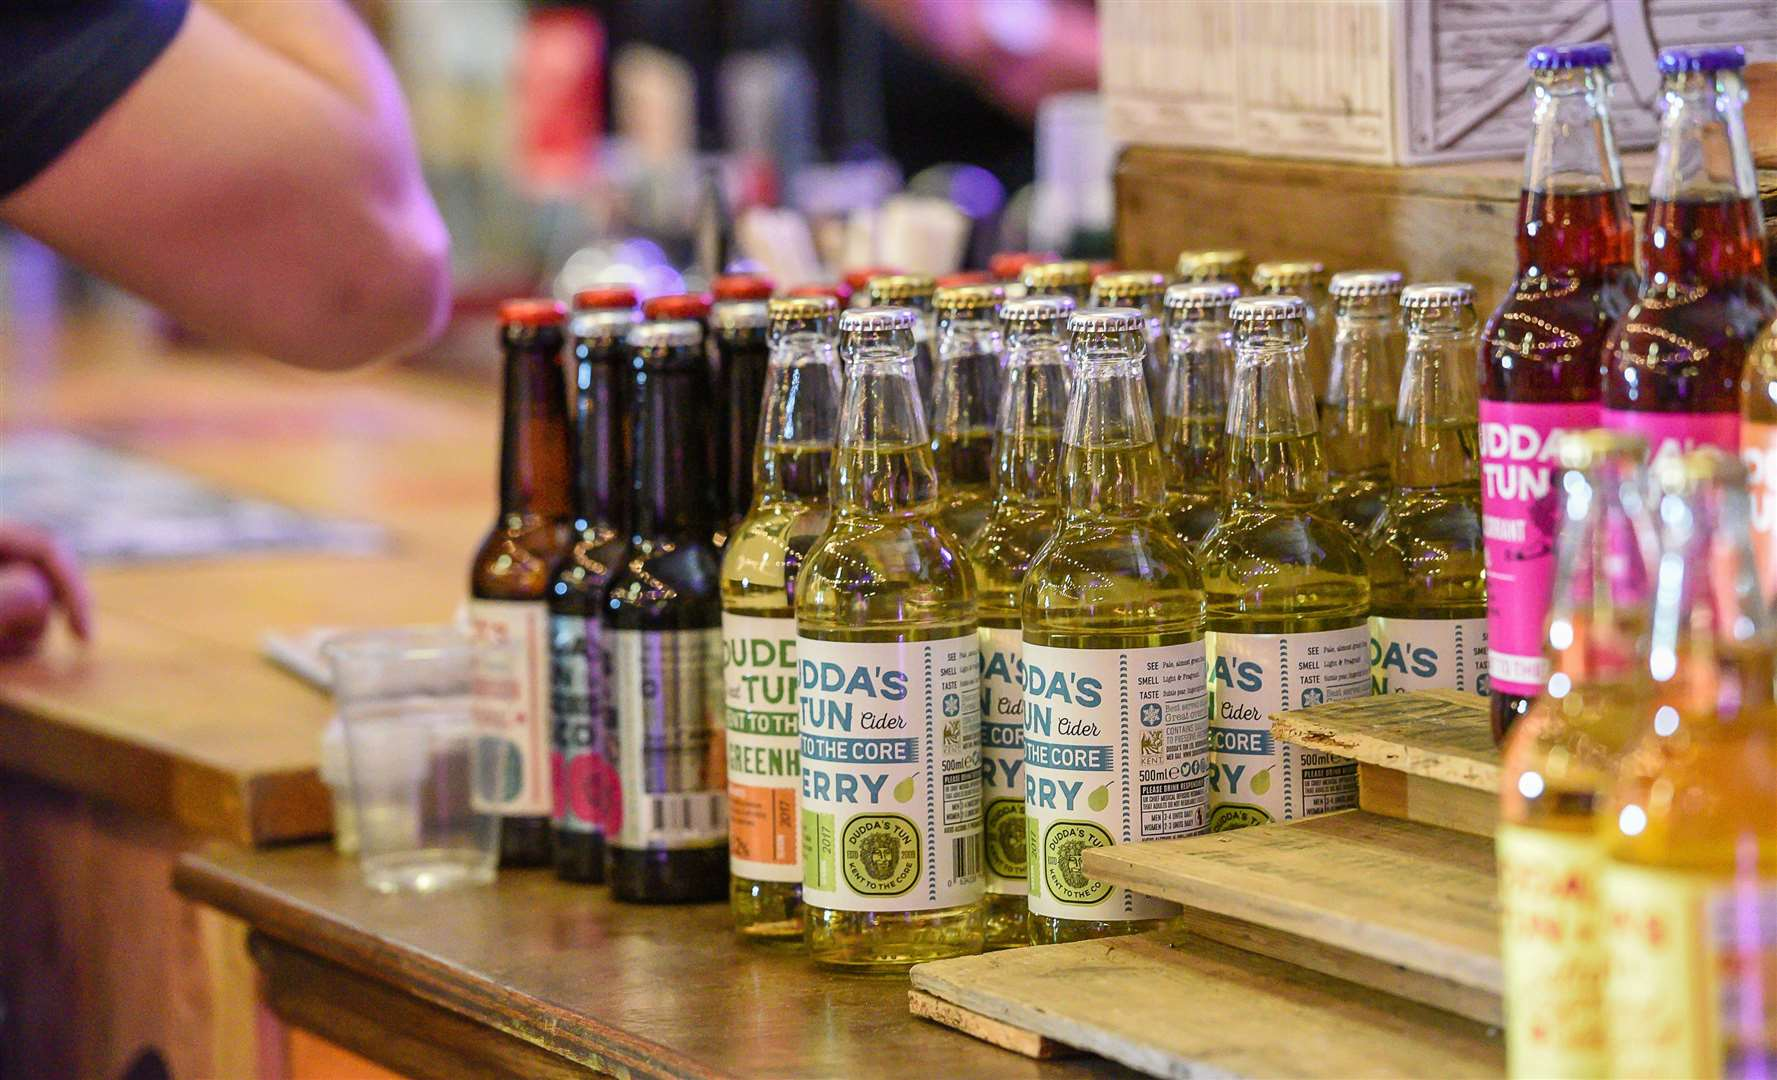 Ciders to suit all tastes will be at the Brogdale Cider Festival